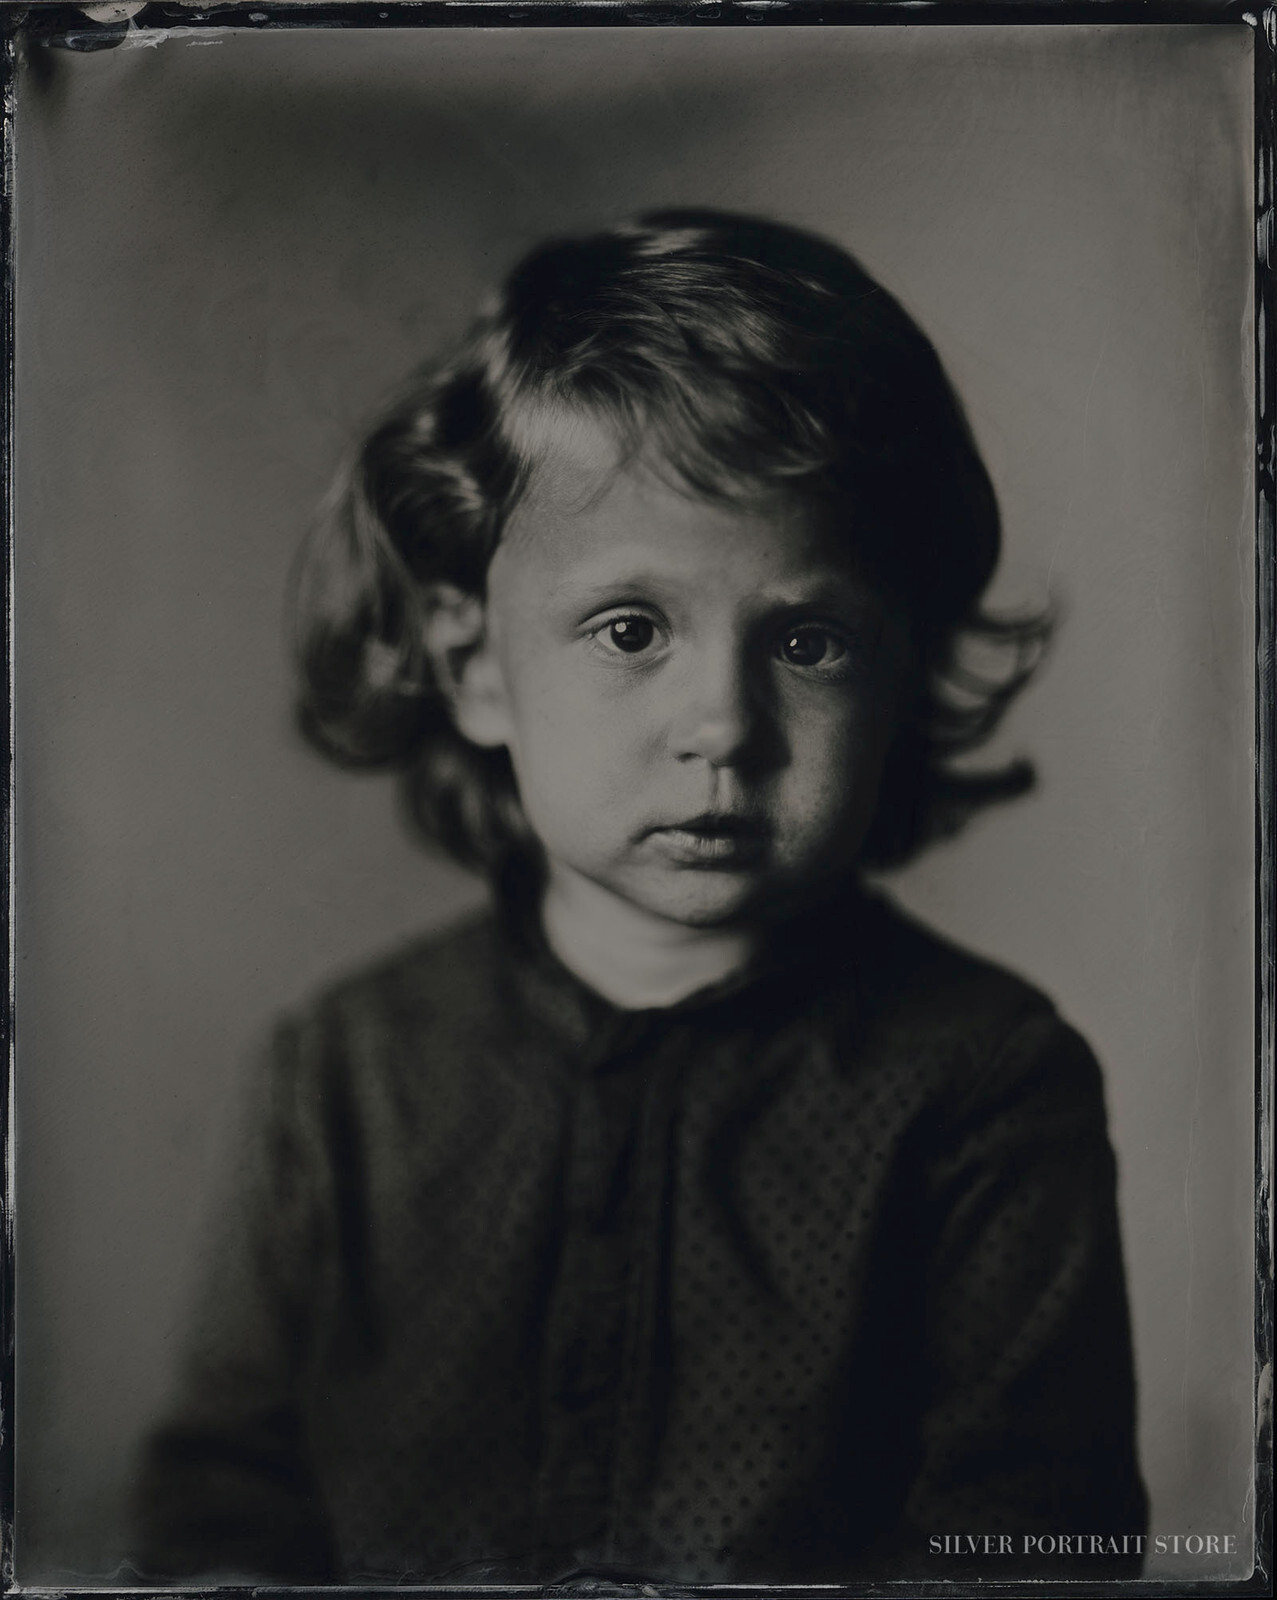 Eléa-Silver Portrait Store-Scan from Wet plate collodion-Tintype 20 x 25 cm.